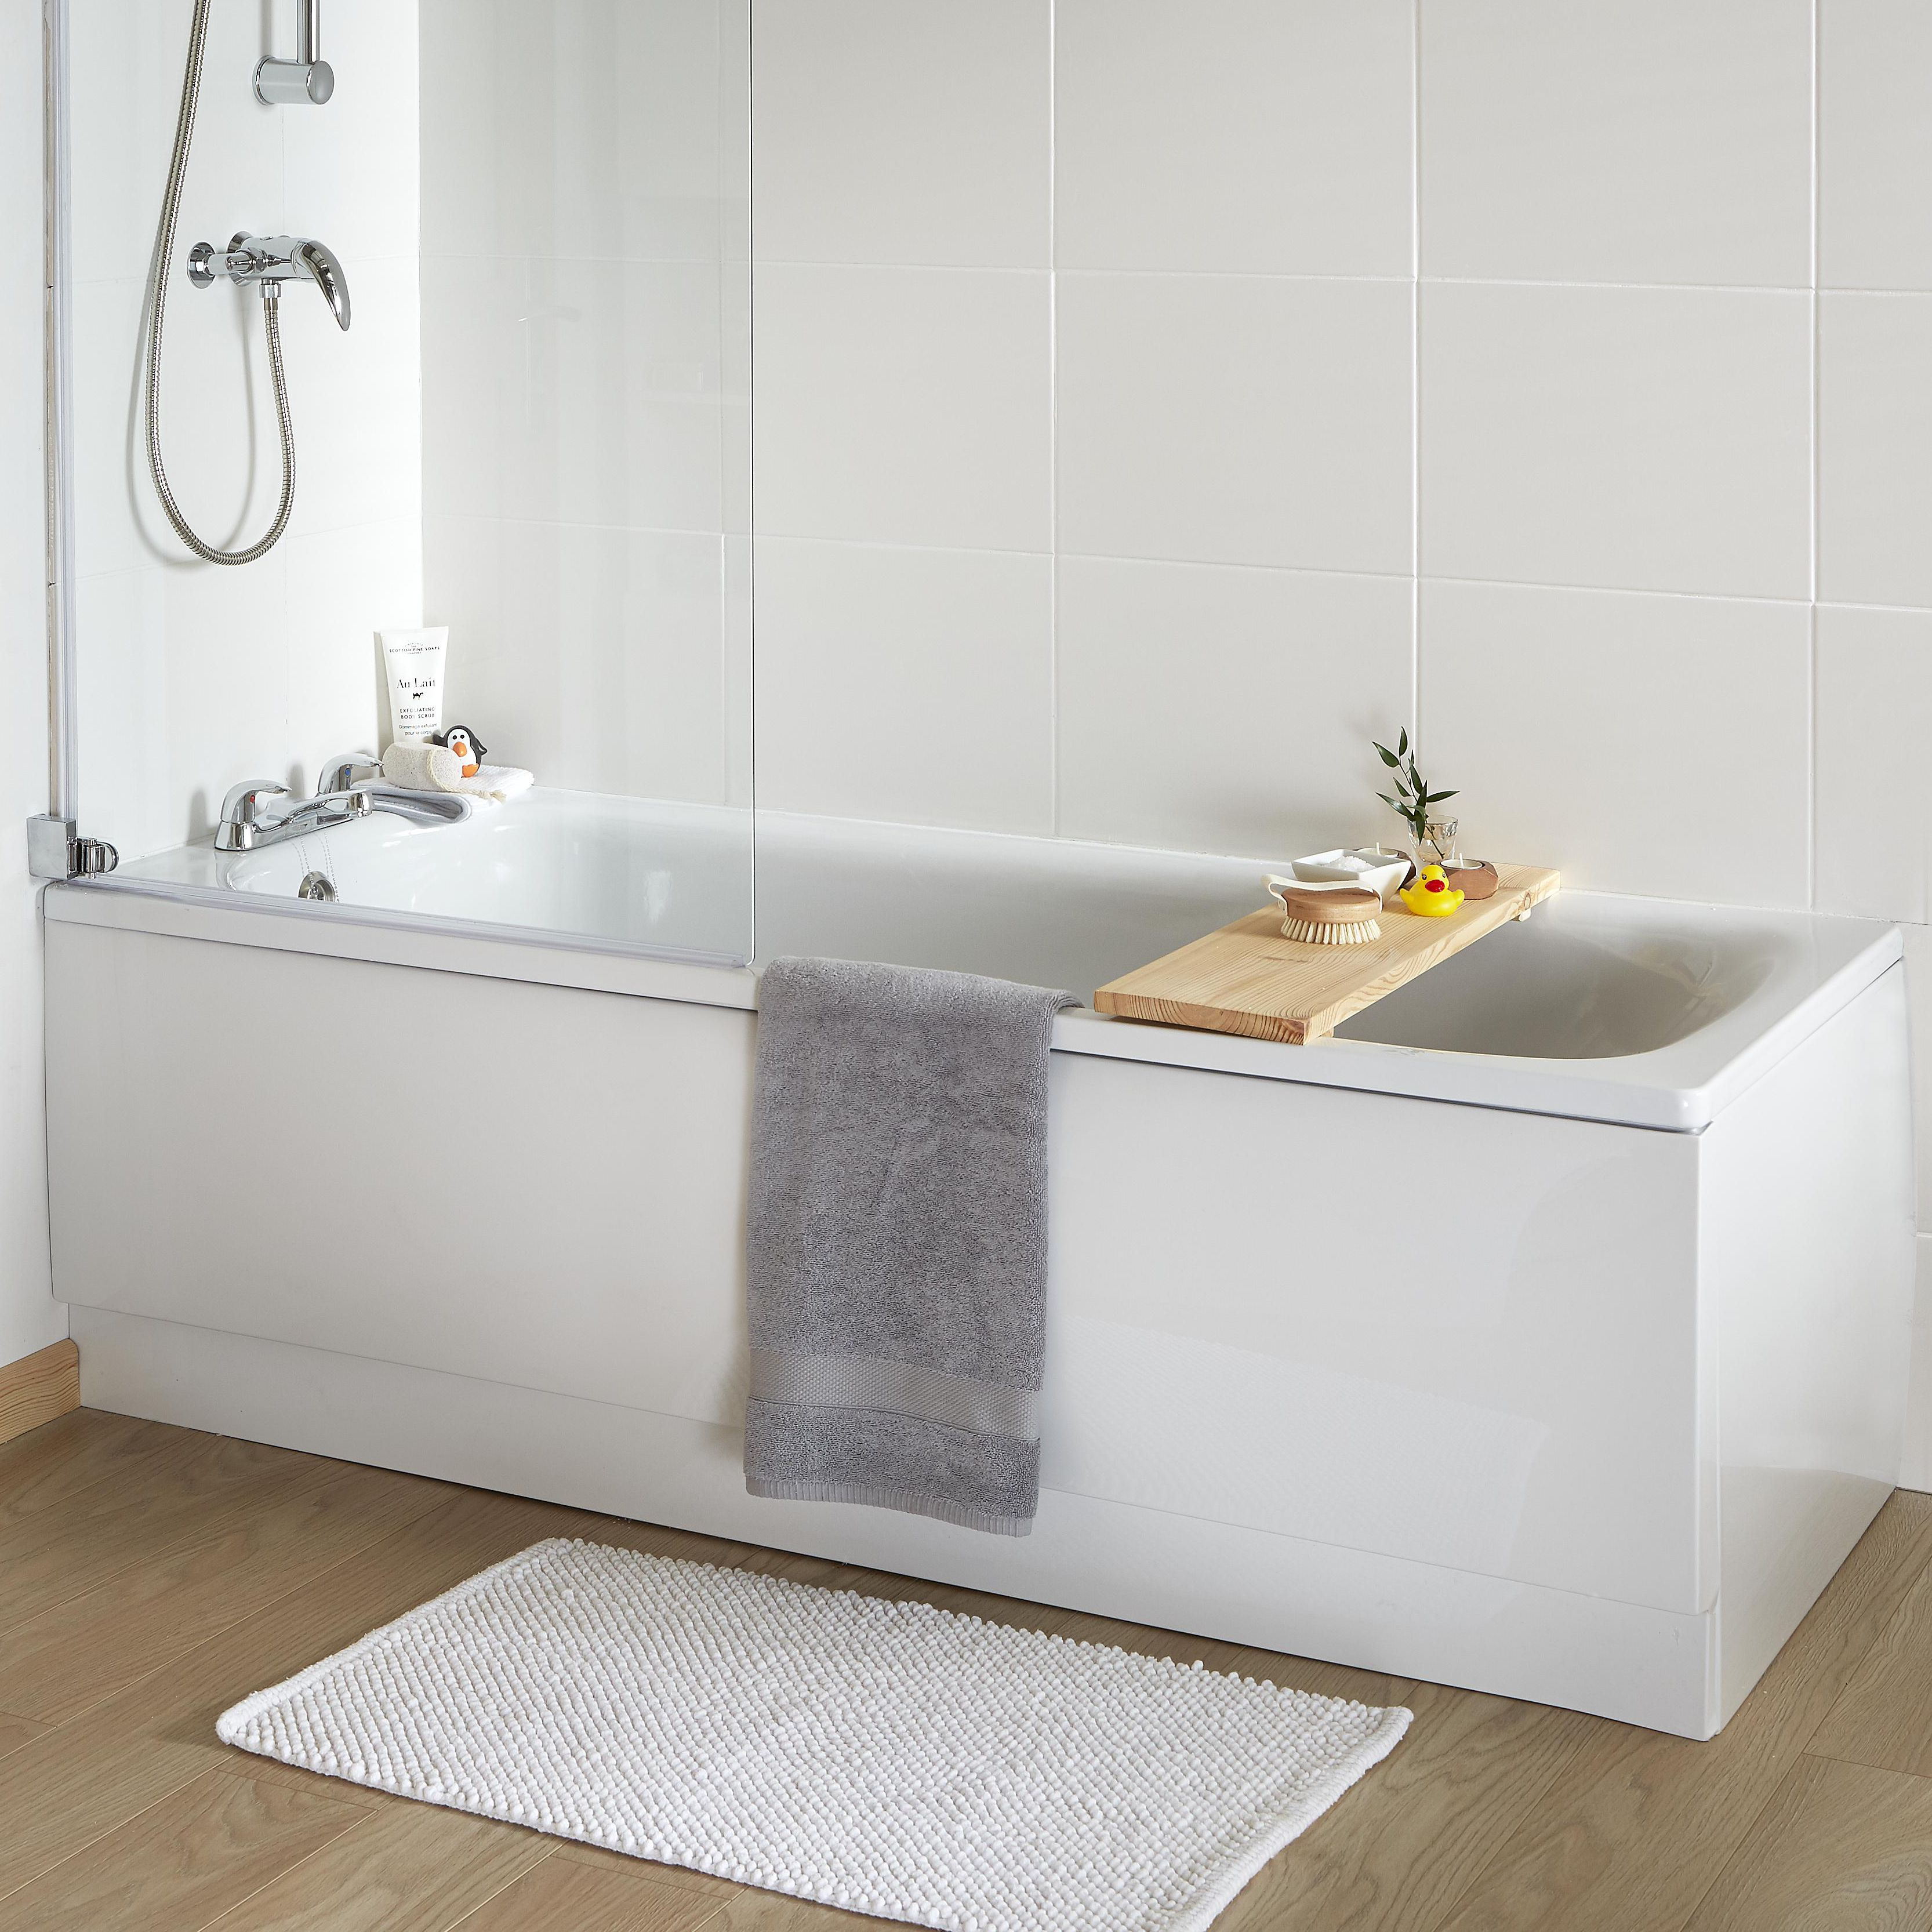 Bath Bathroom Baths  Shower Baths & Corner Baths  Diy At B&q